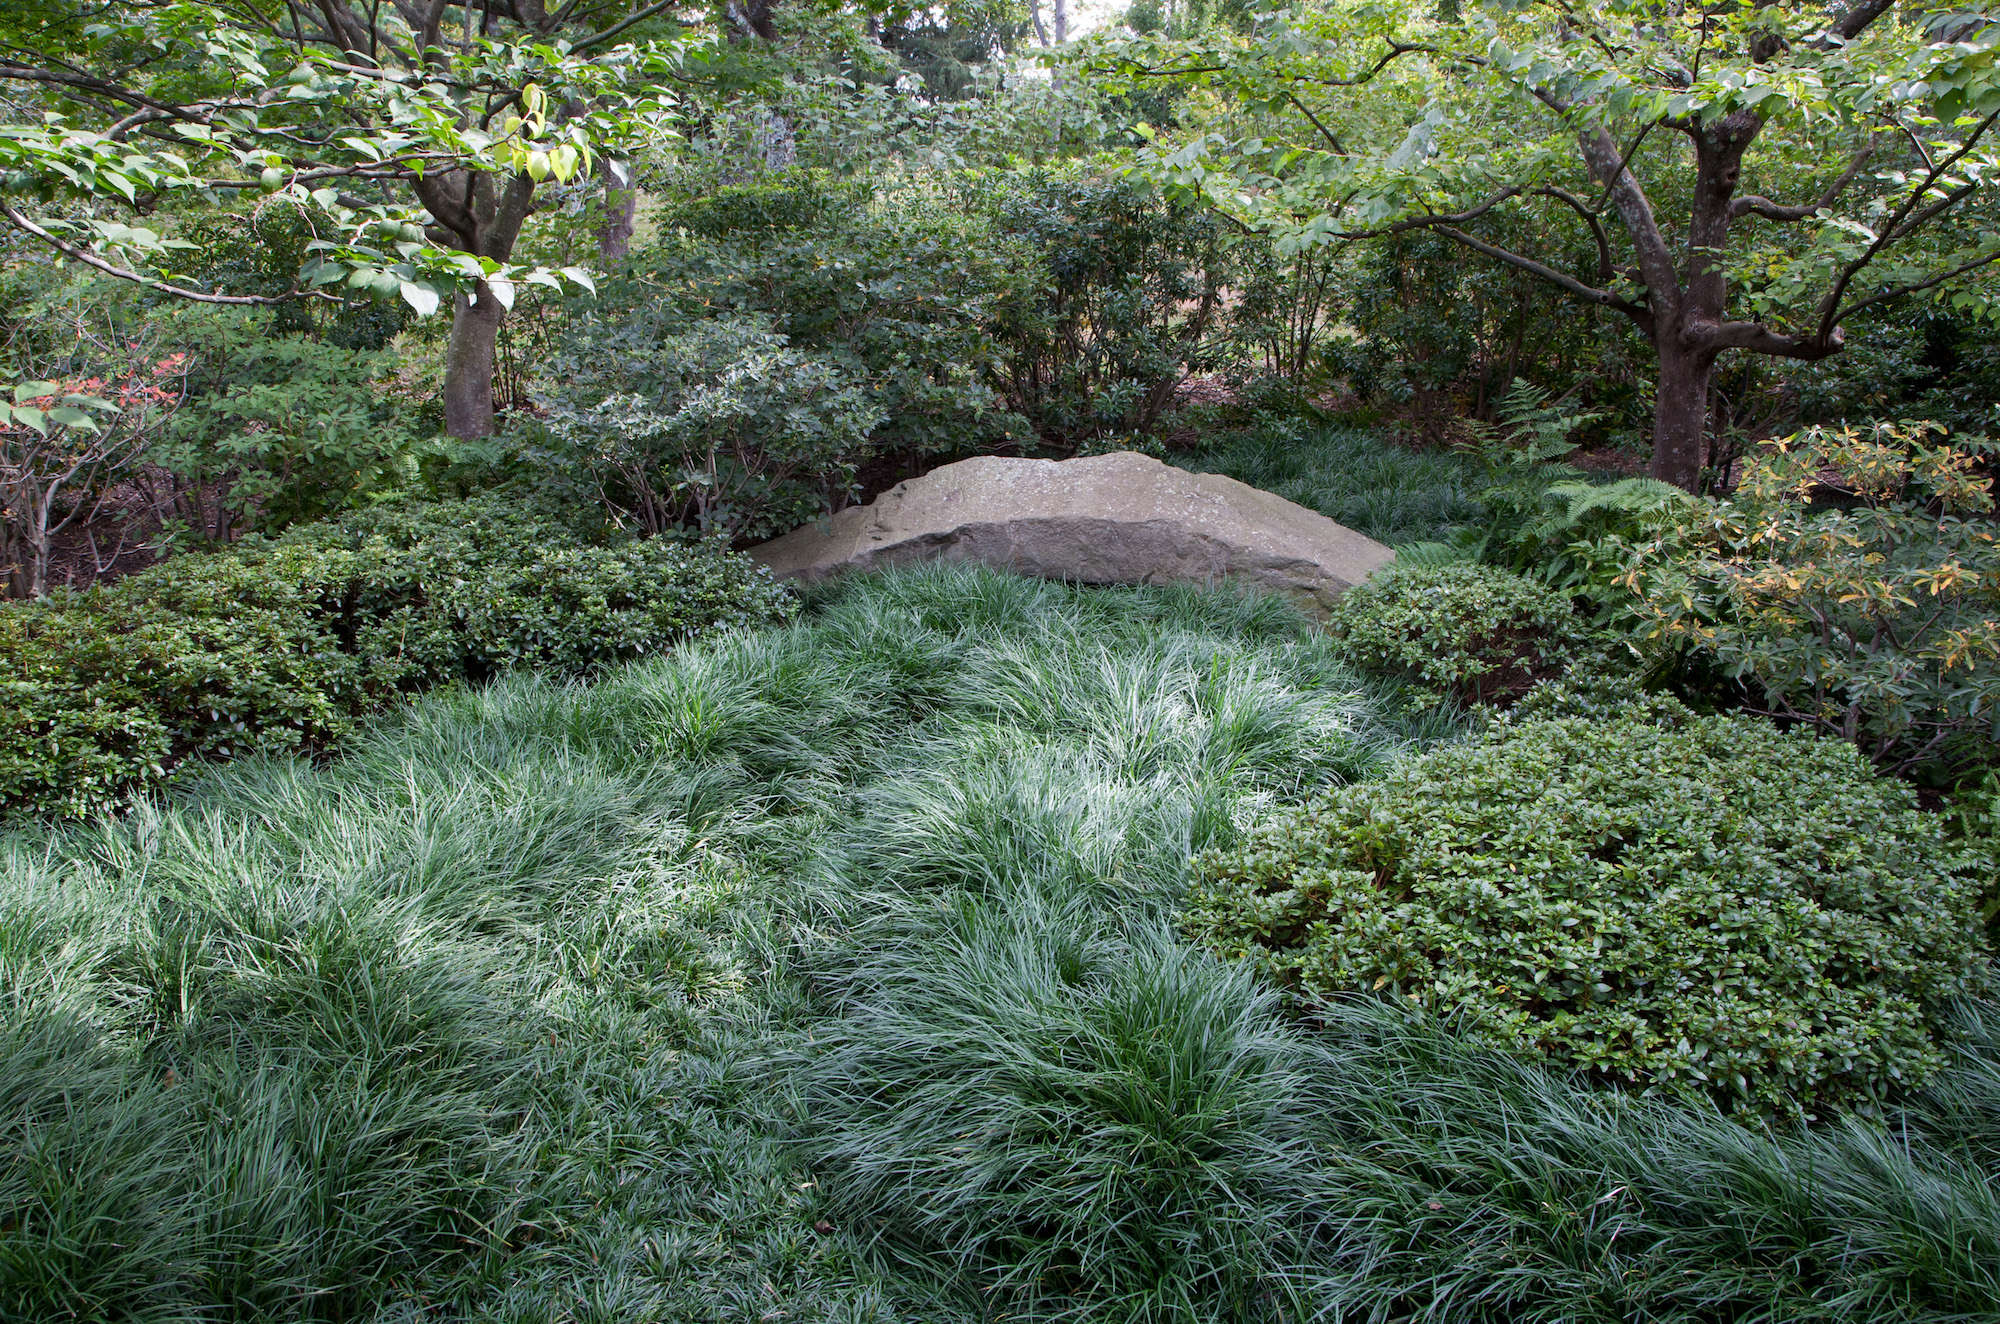 Keane used bluestone from the Catskills for both the large, flat slabs that comprise the forest walk and the small boulders that border the ocean garden, below.